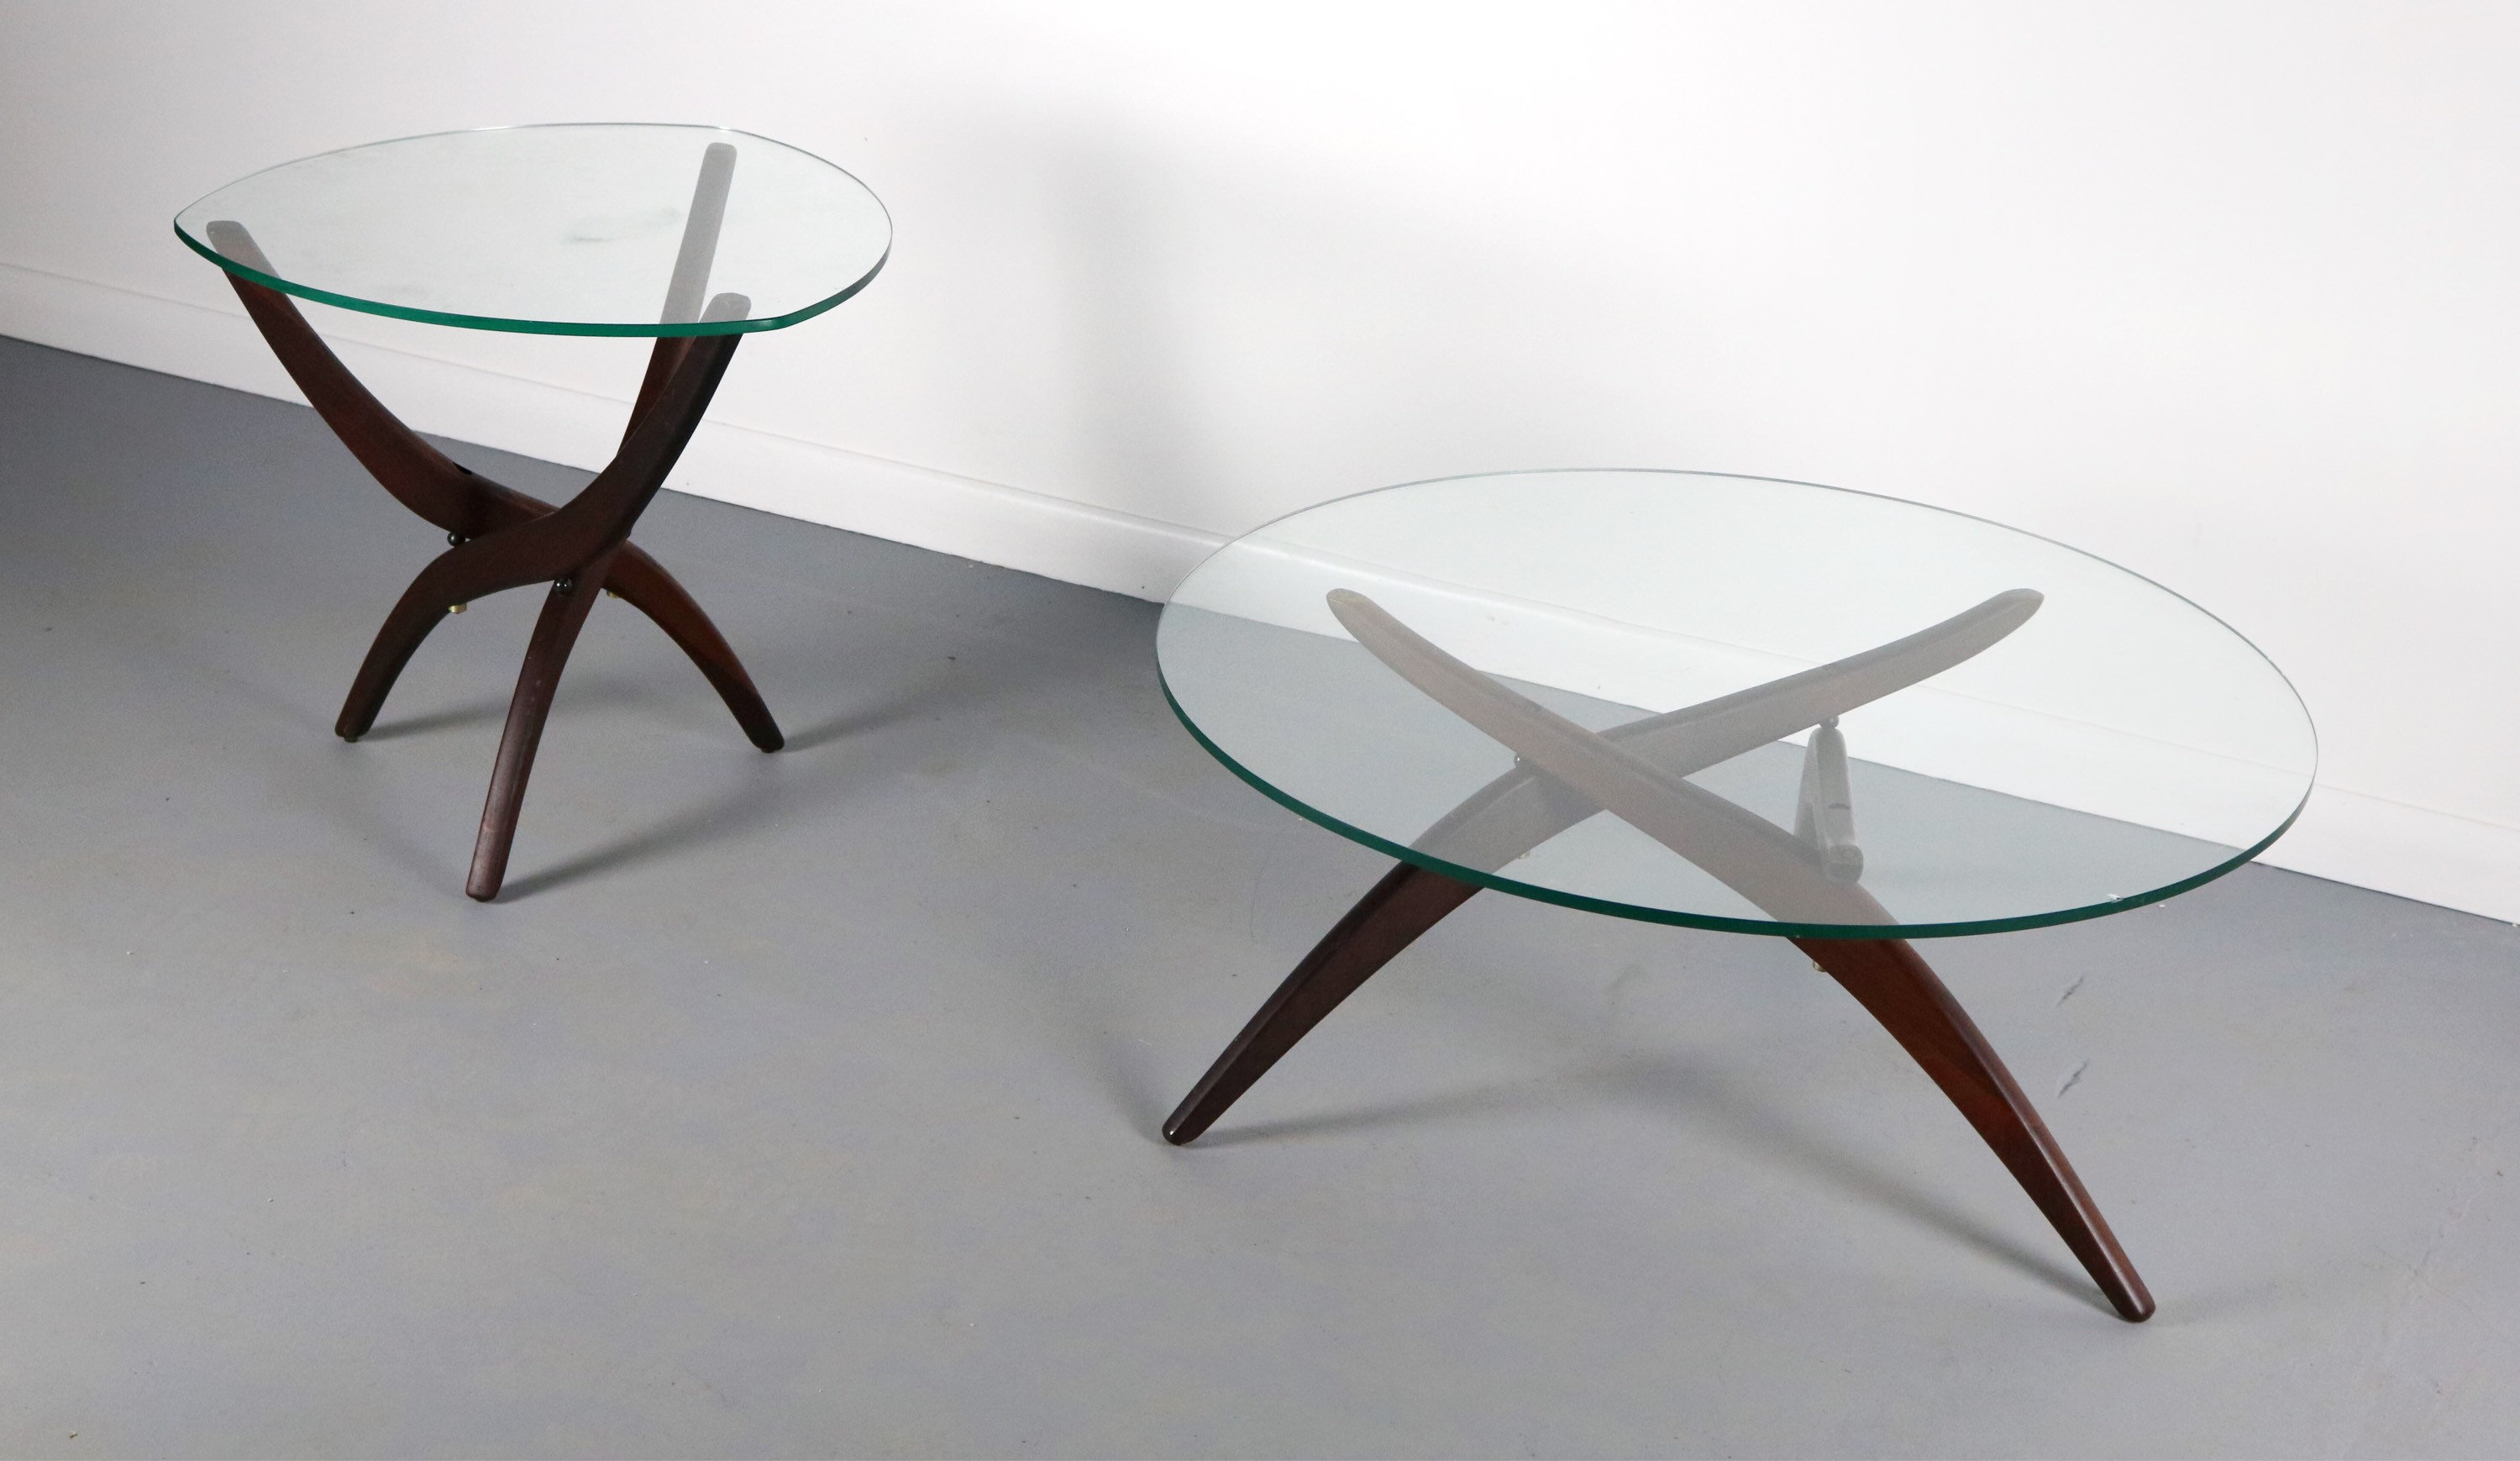 set forest wilson rosewood glass architectural coffee table and end accent lime green ikea dining room furniture patio toronto dark brown essentials desk half round side nice